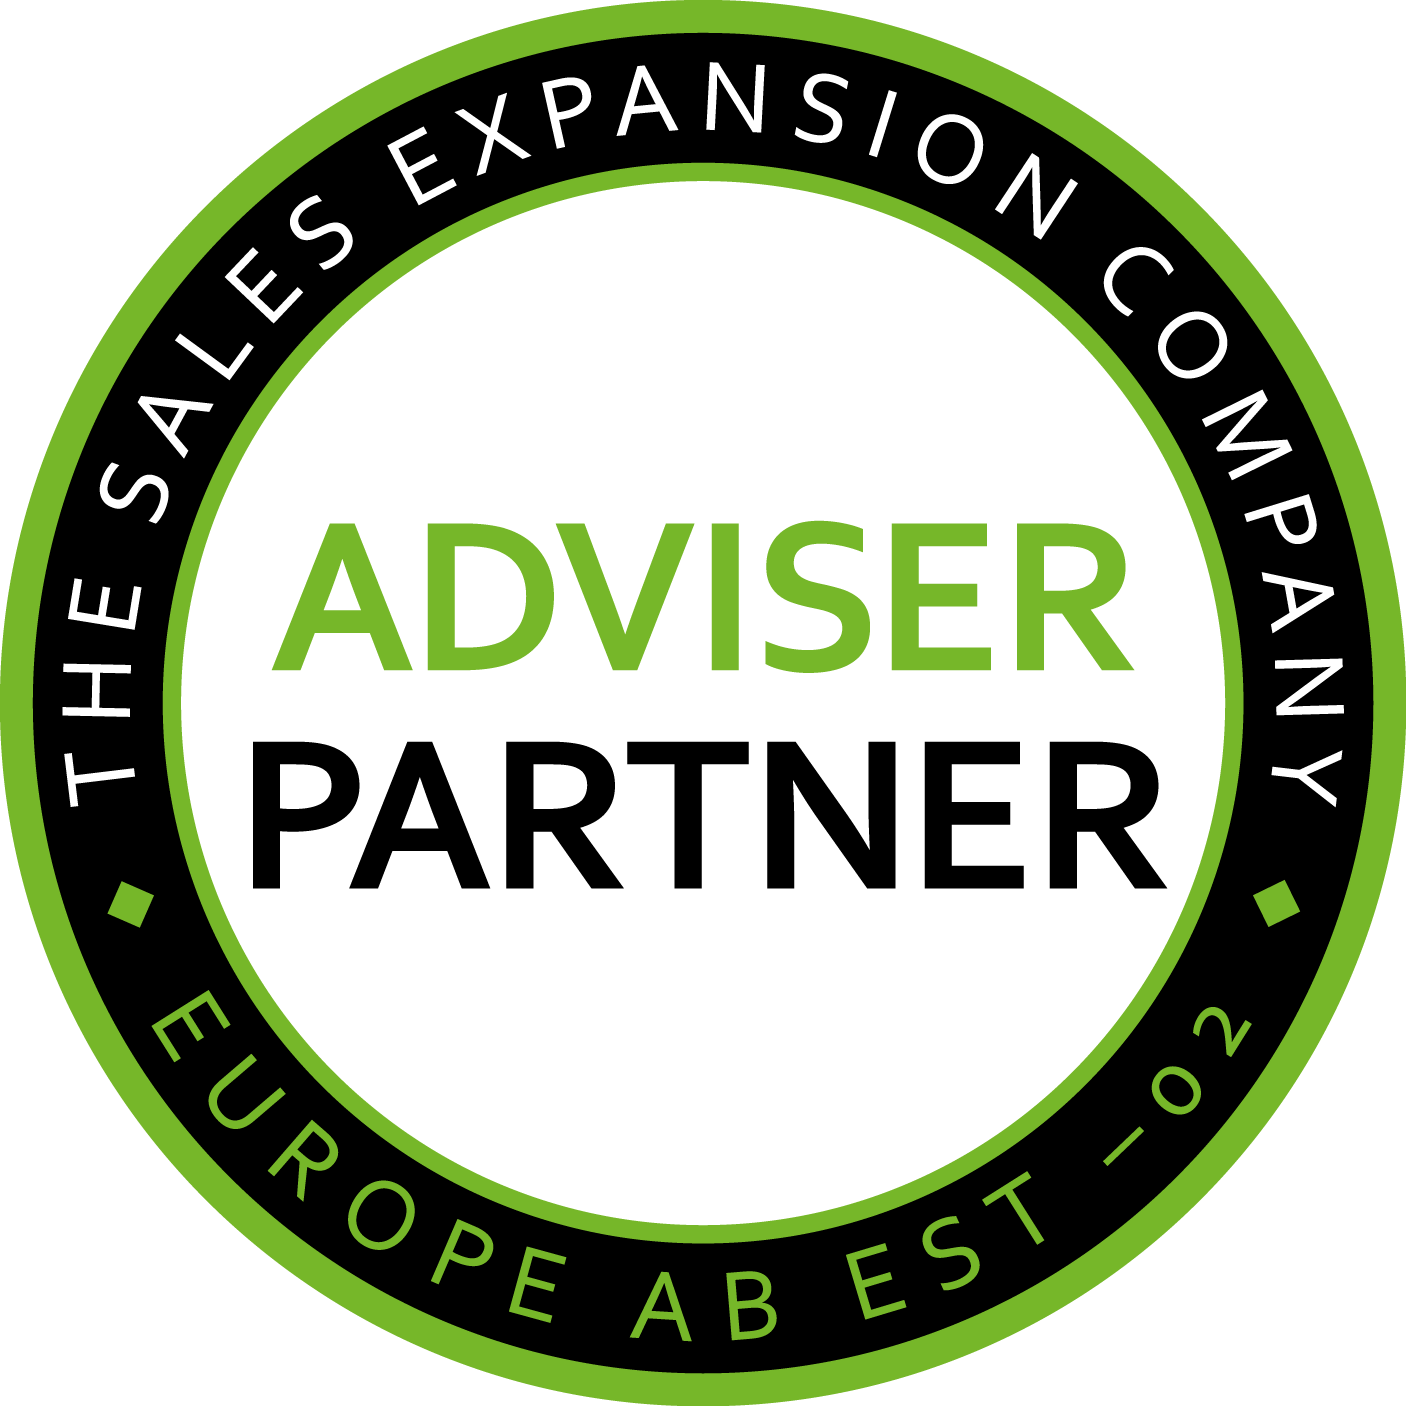 Adviser Partner logotyp